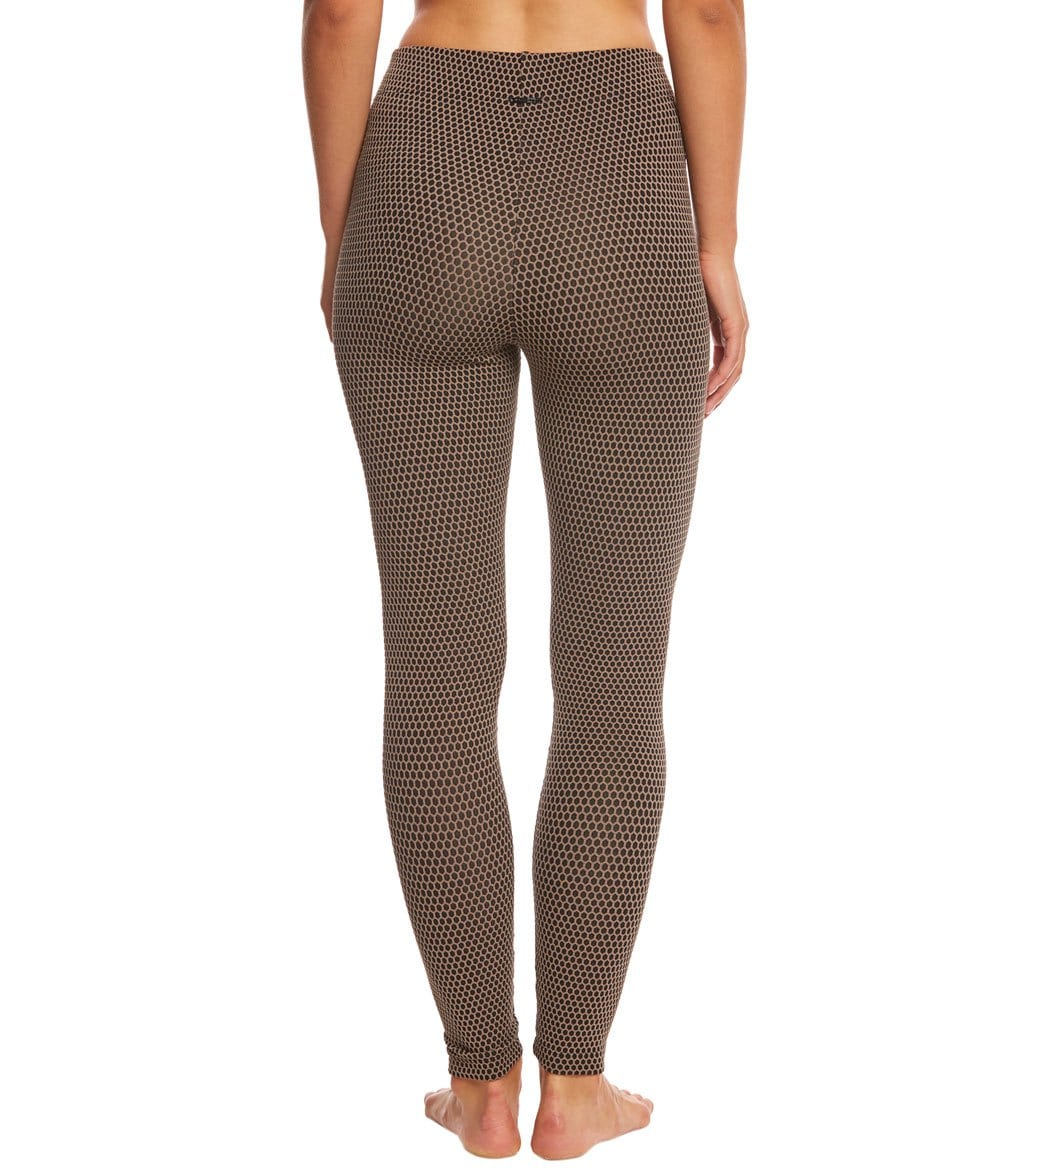 551129a58249e KORAL Power Mid Rise Yoga Leggings at YogaOutlet.com - Free Shipping